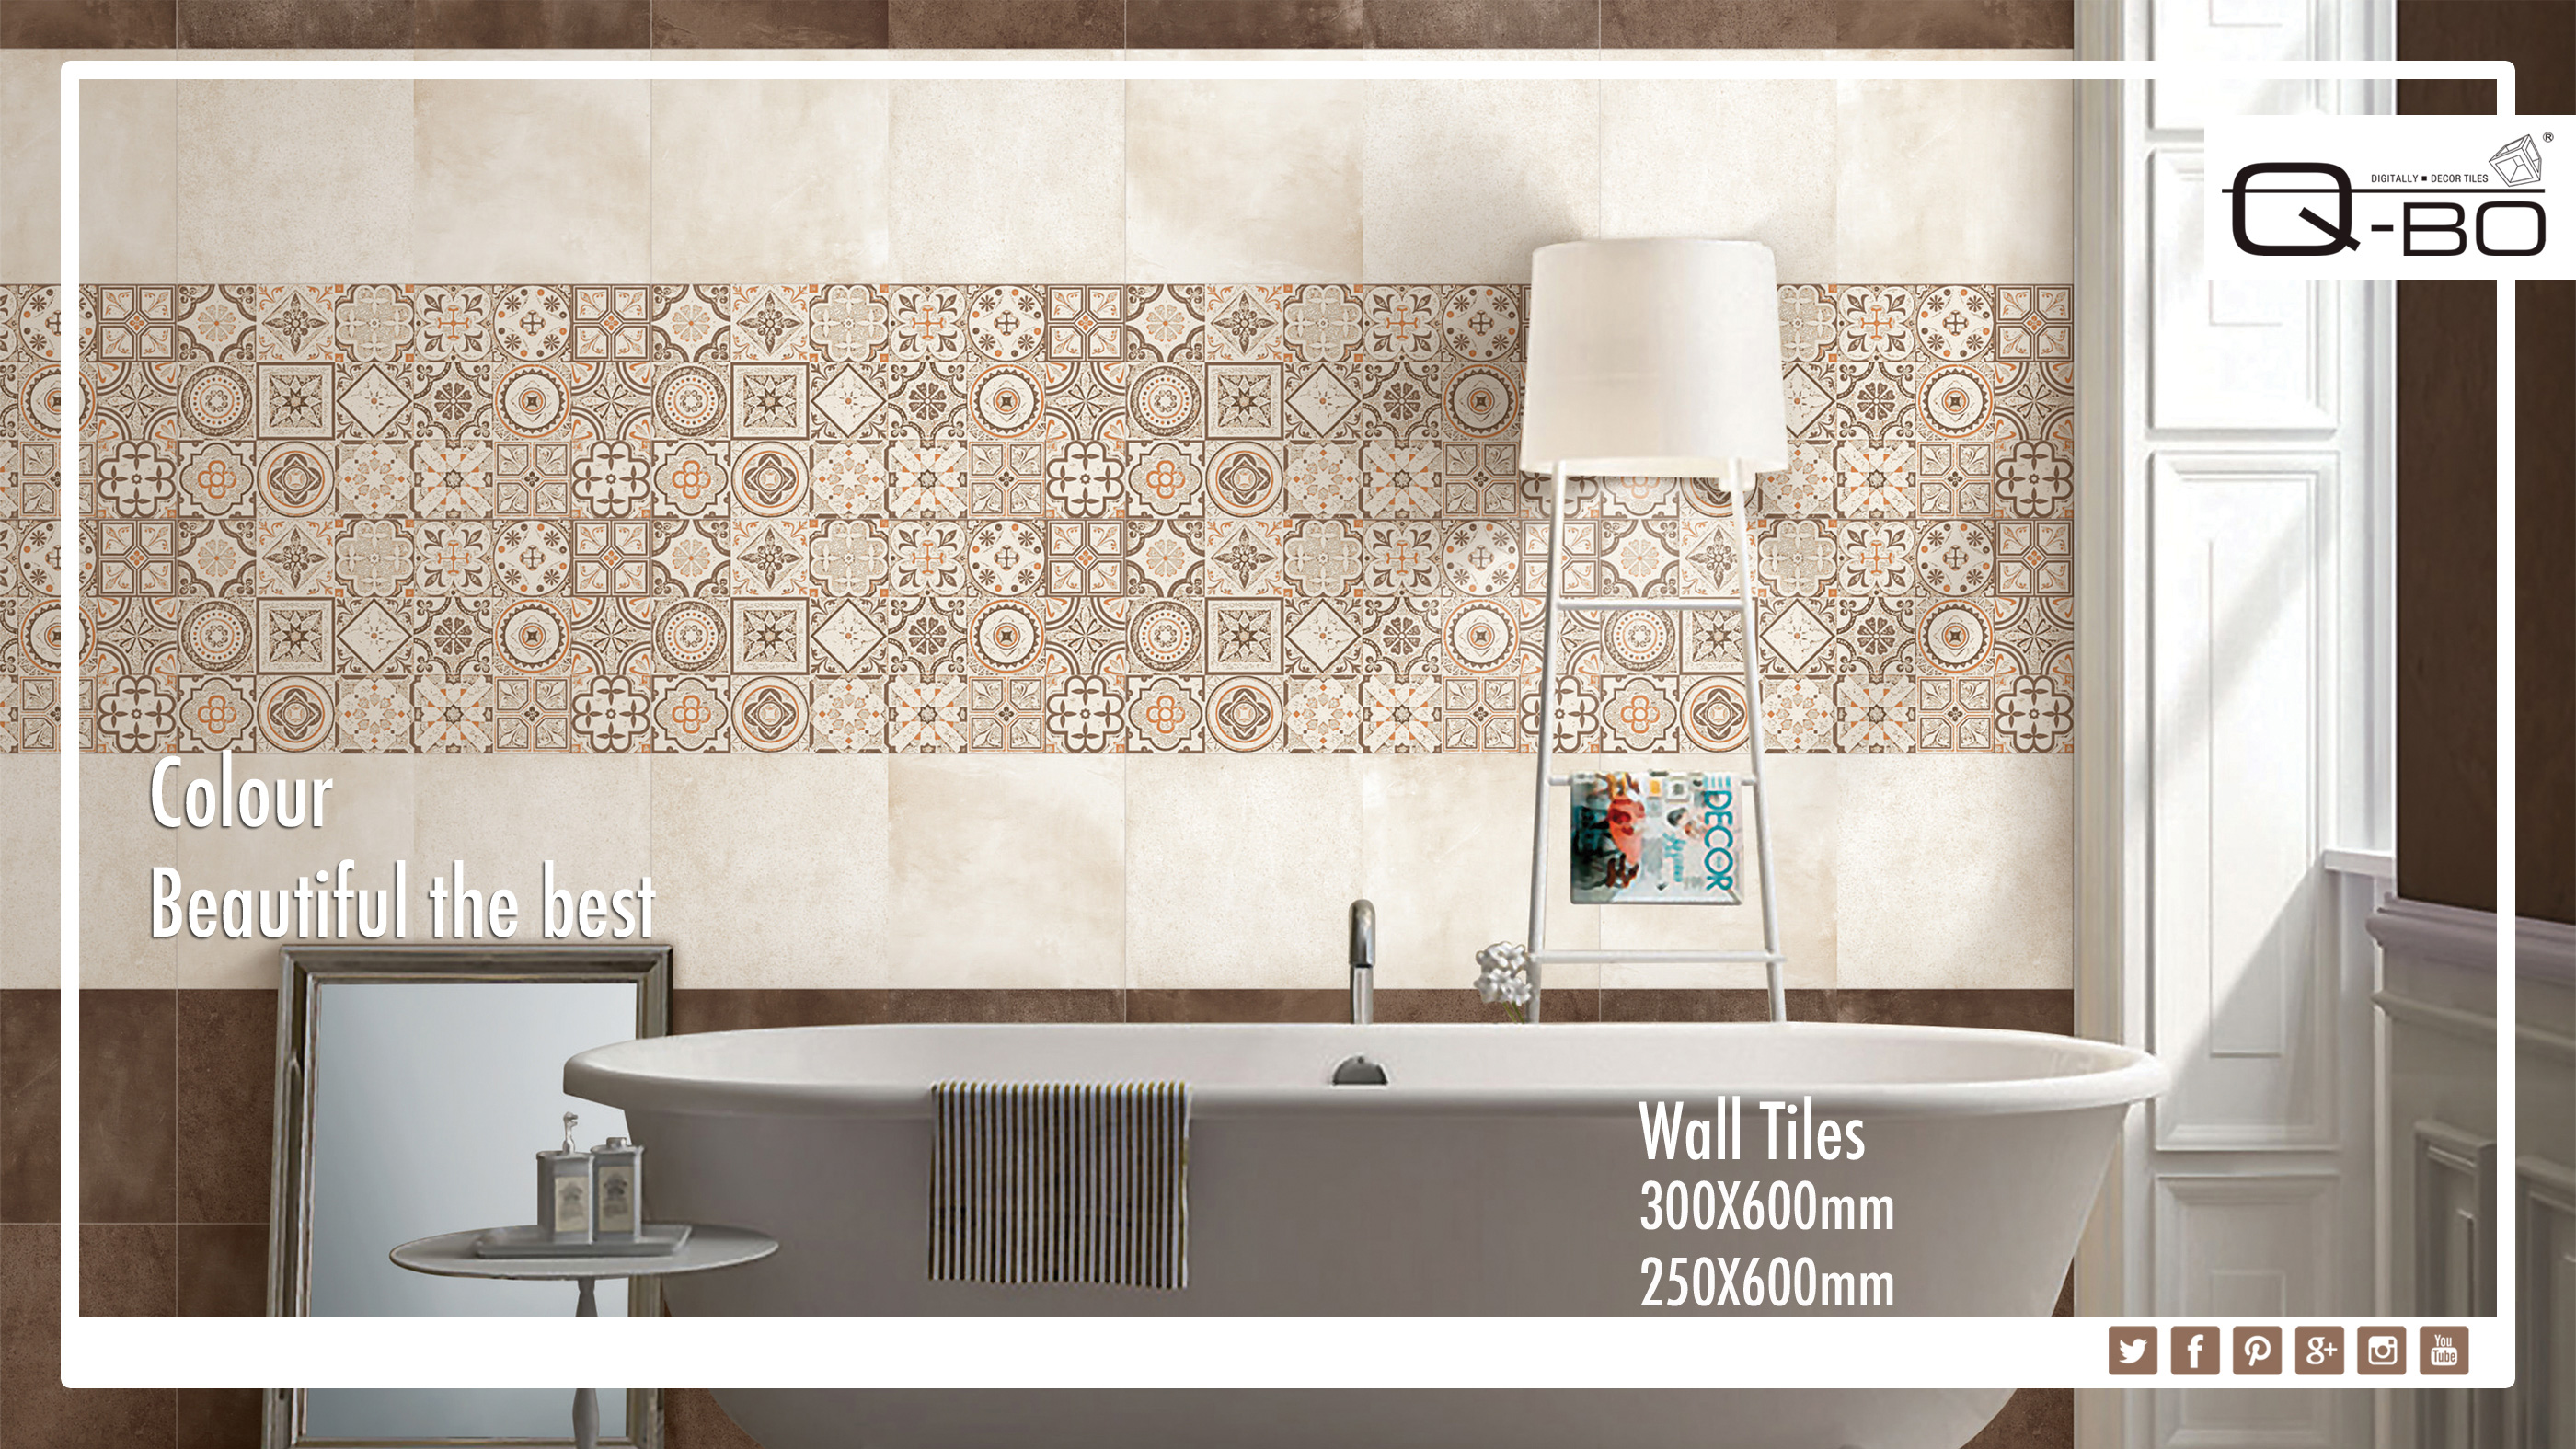 Tips to Consider On Choosing a Right Bathroom Wall Tiles